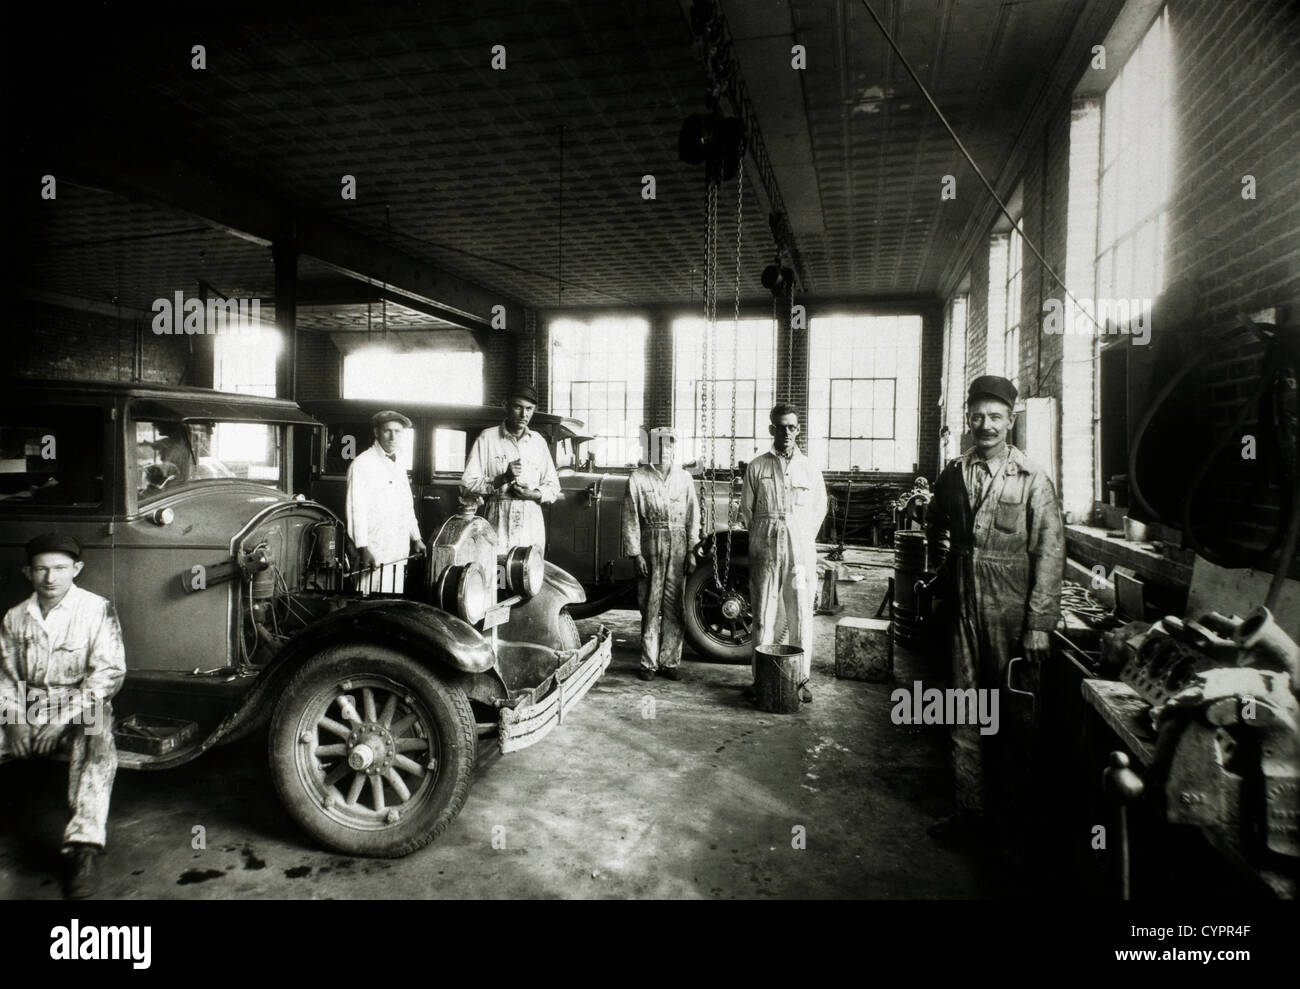 Group of Workers in Automotive Garage, USA, Circa 1920 - Stock Image